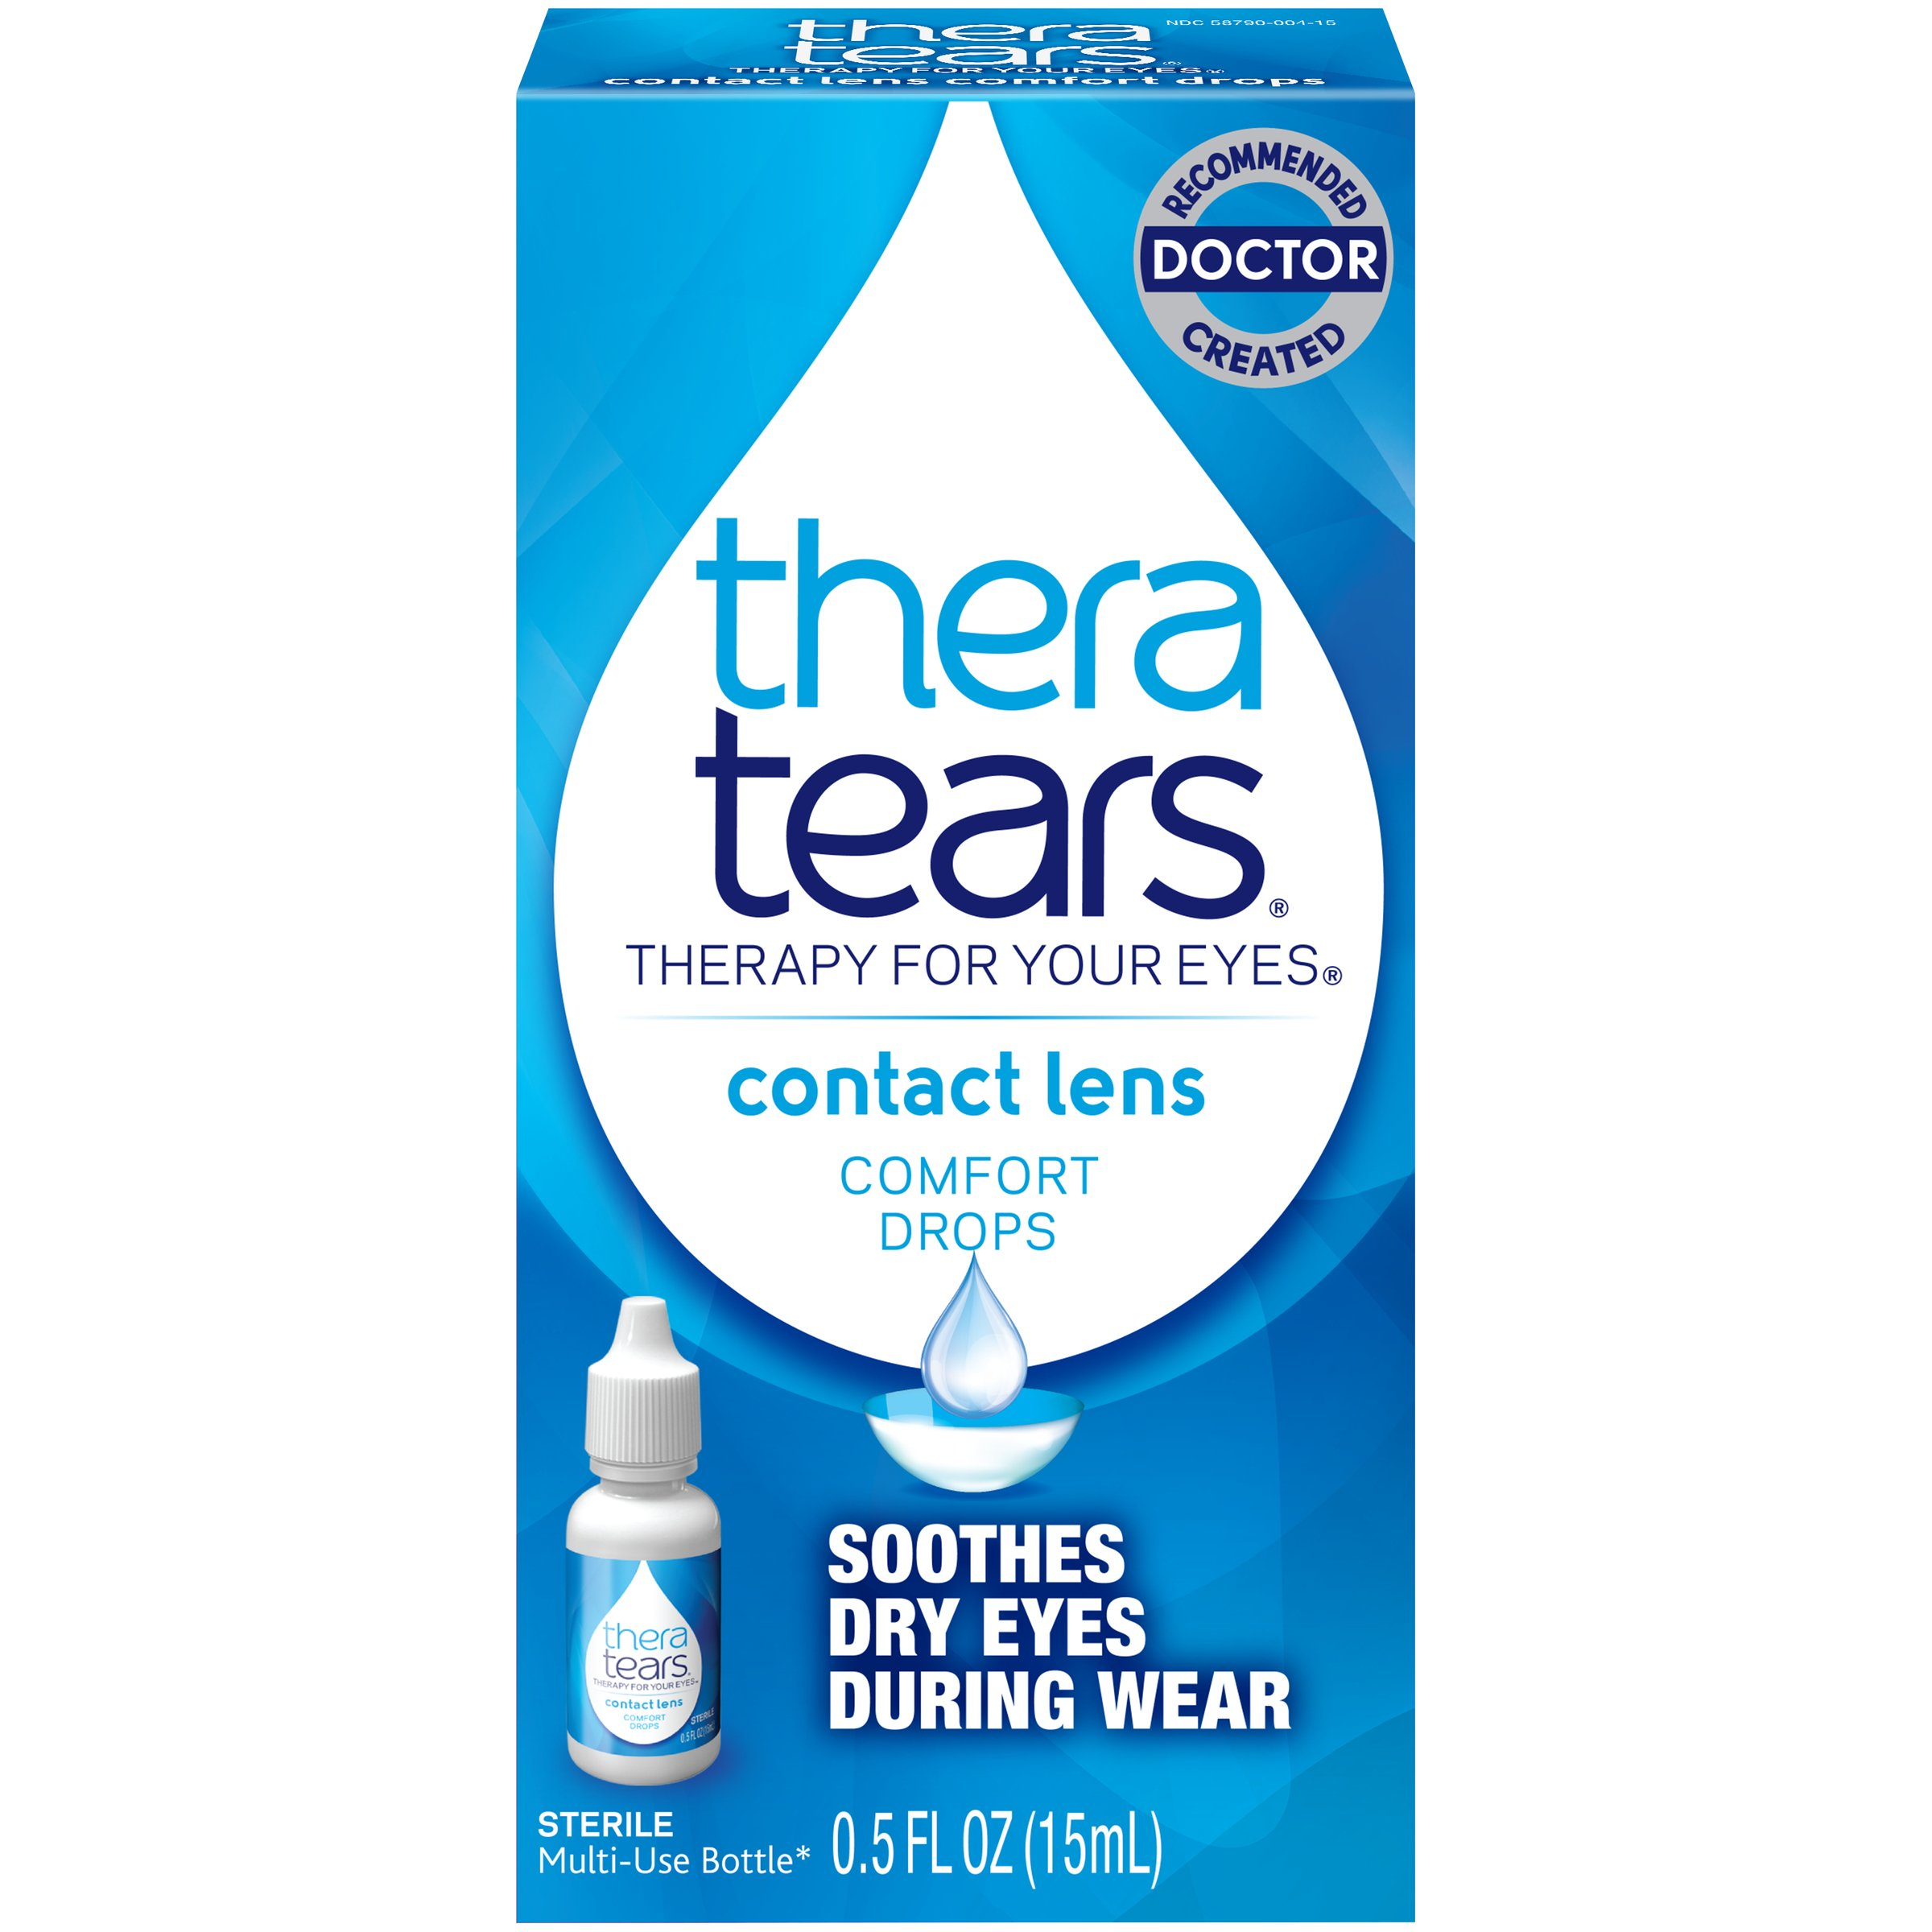 TheraTears Eye Drops for Contacts, Contact Lens Comfort Rewetting Eyedrops for Dry Eyes, 0.5 Fl oz, 15 mL